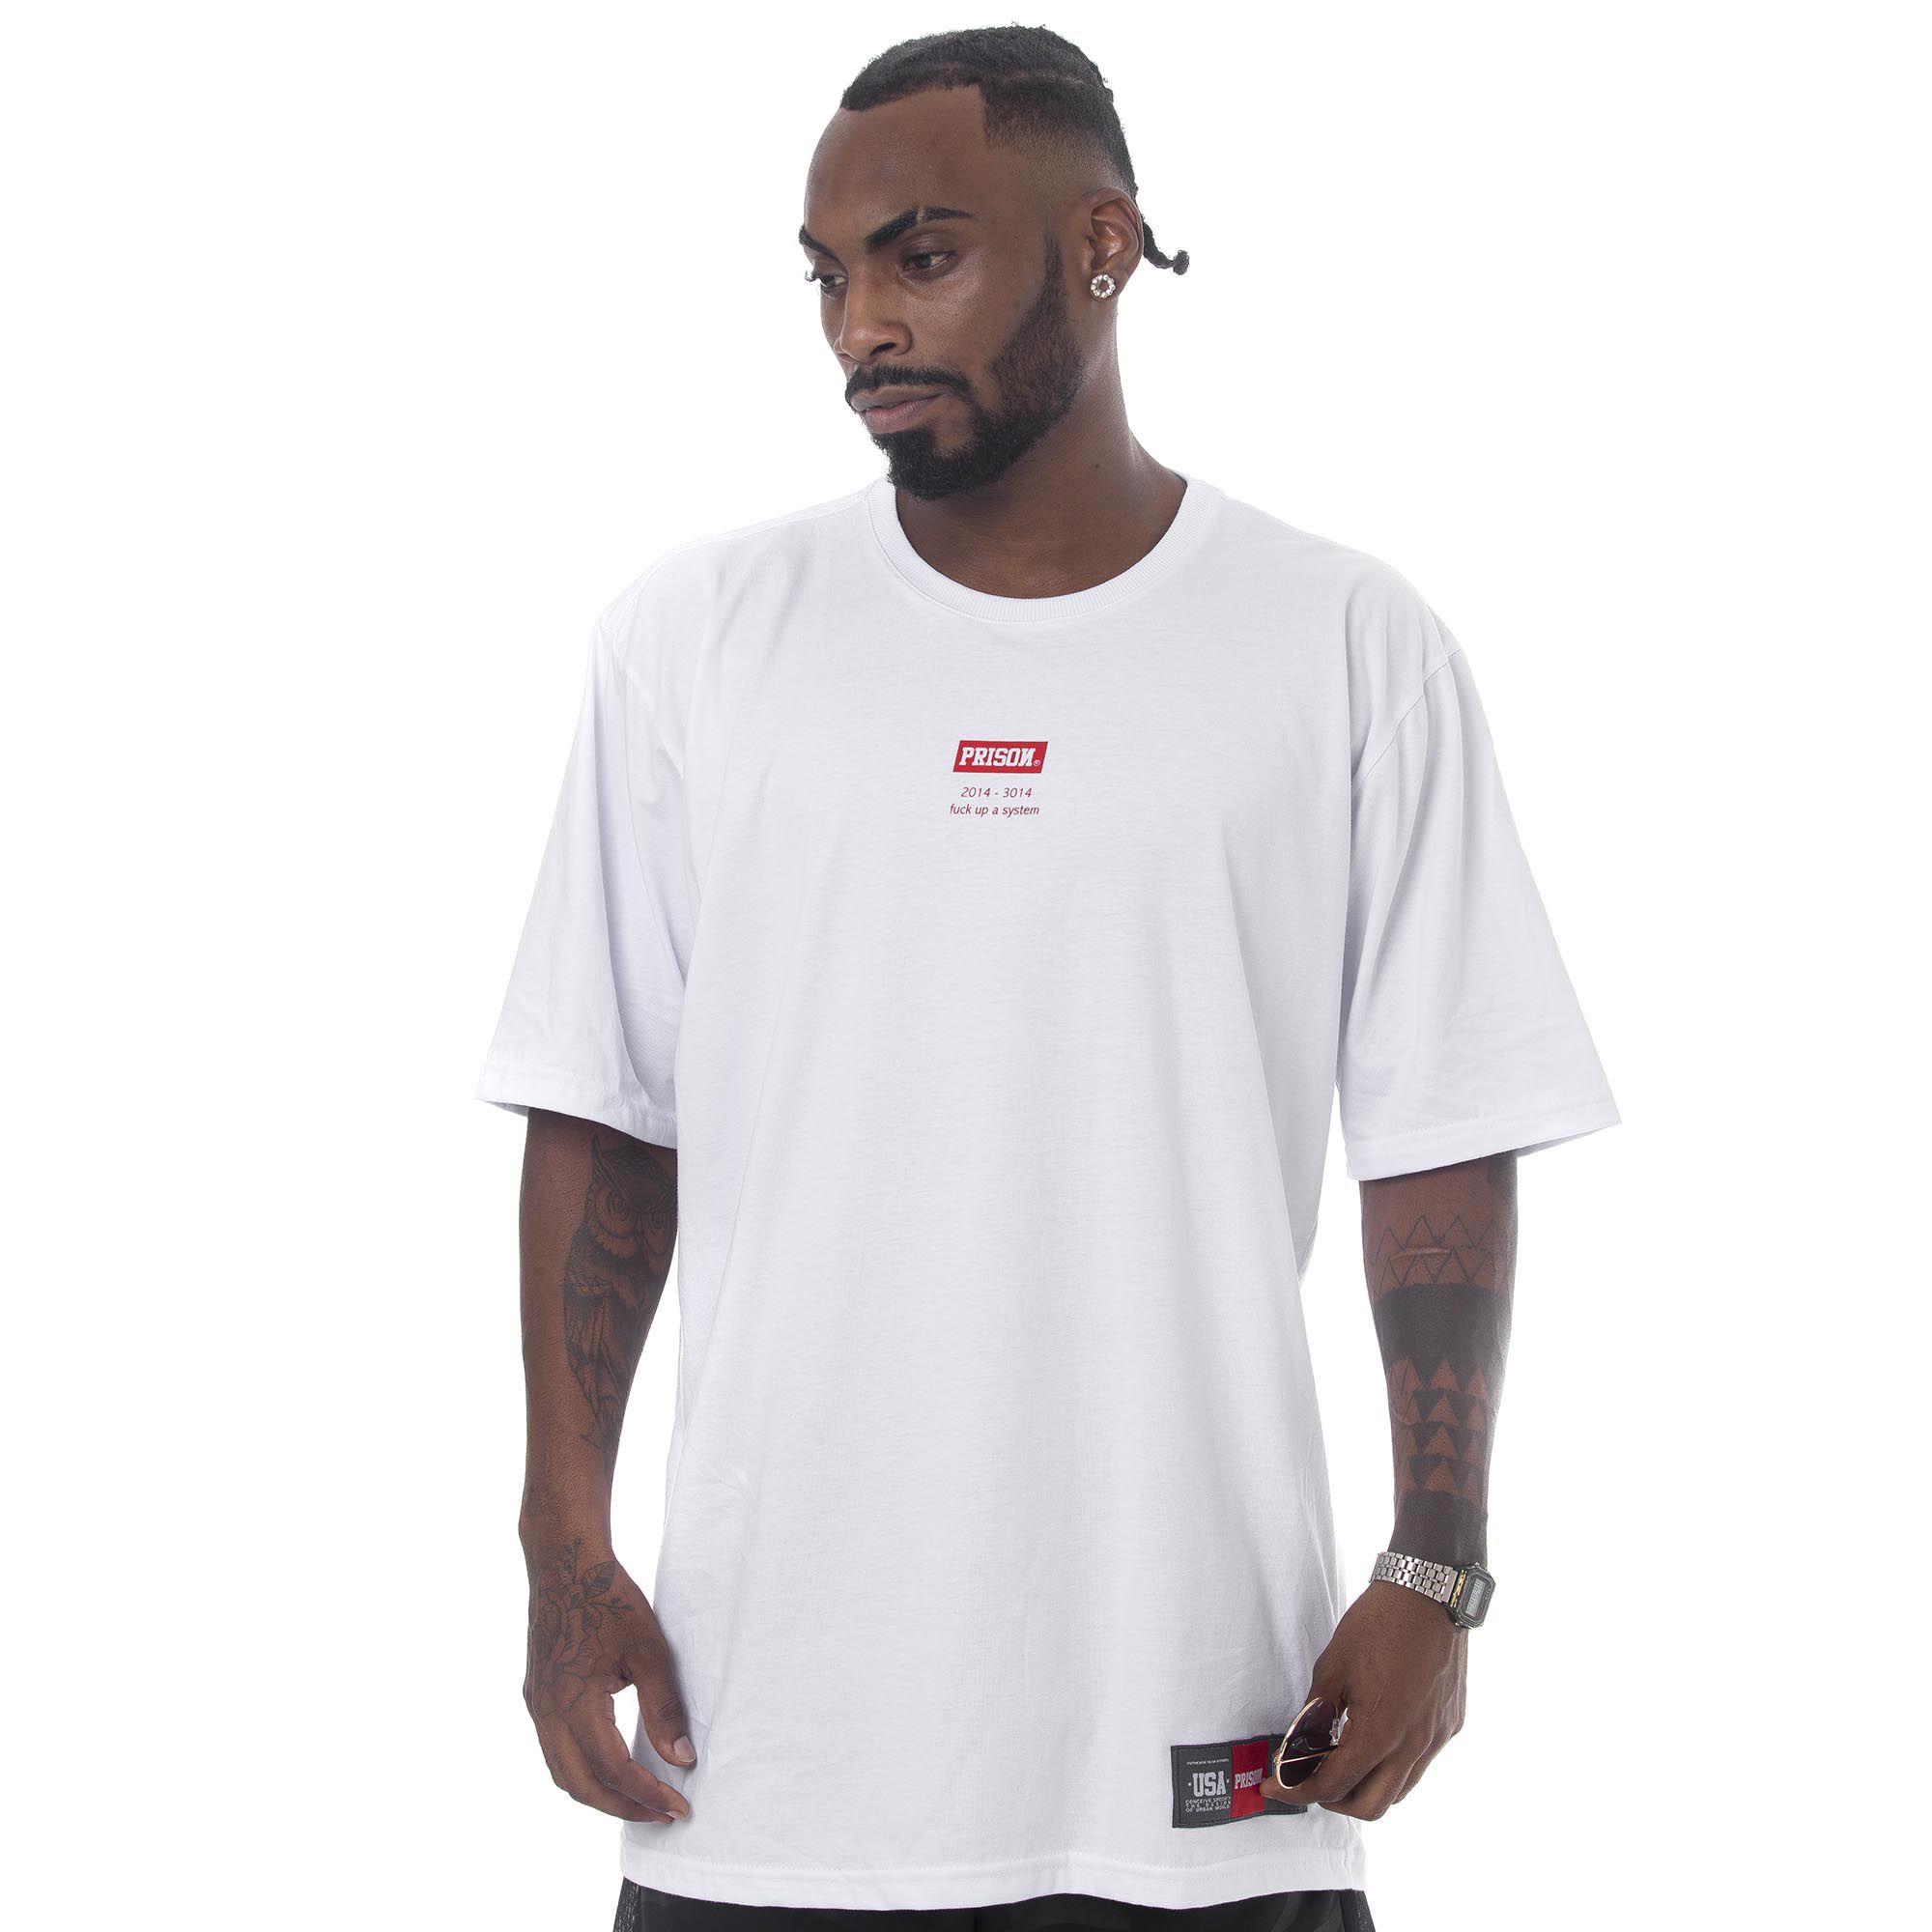 Camiseta Prison New York Box Branca